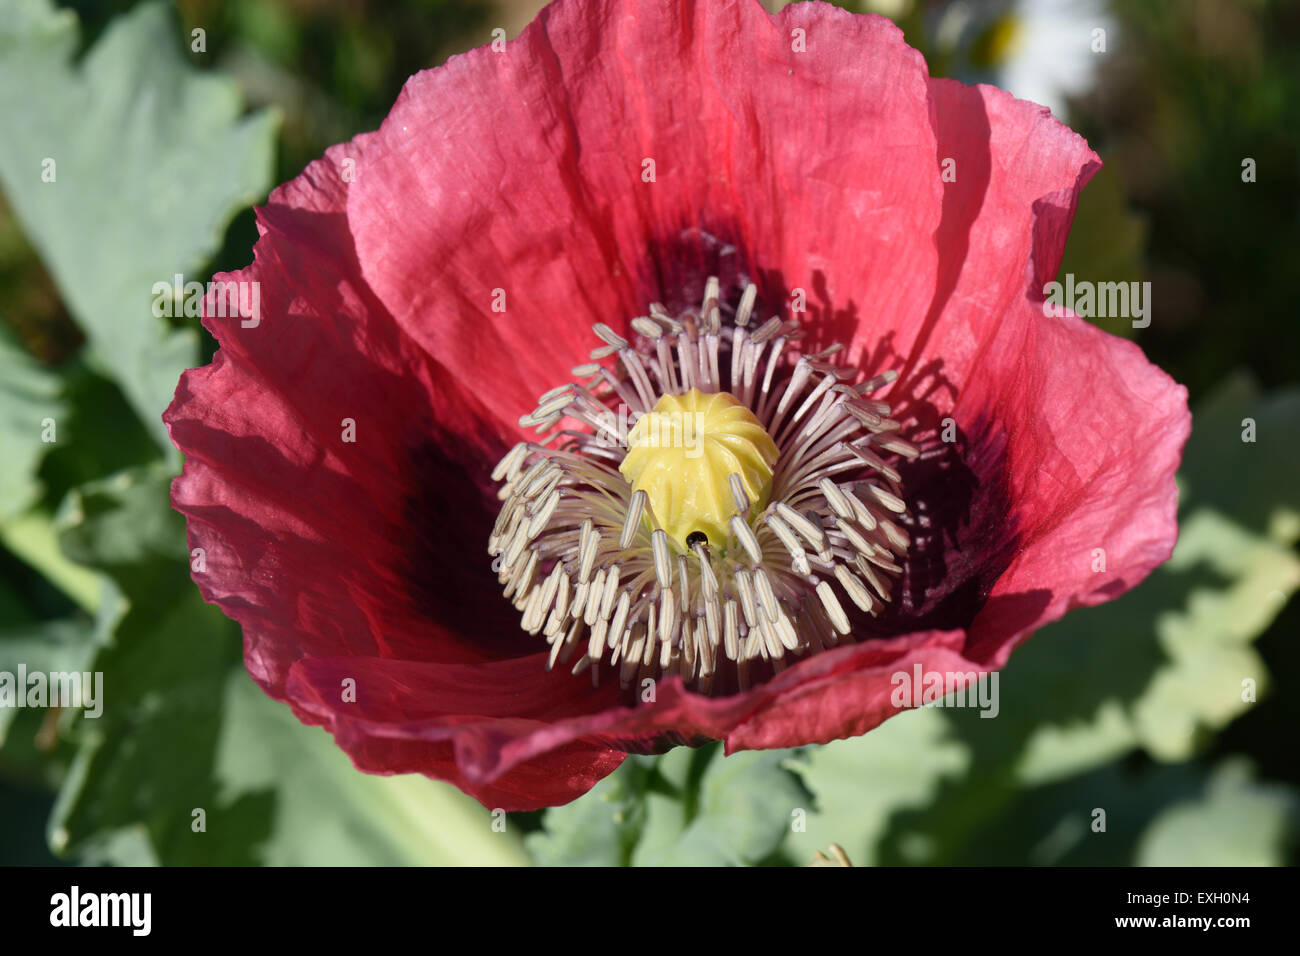 Pink flower of an opium poppy, Papaver somniferum, and annual garden plant or pharmaceutical crop, Berkshire, July - Stock Image